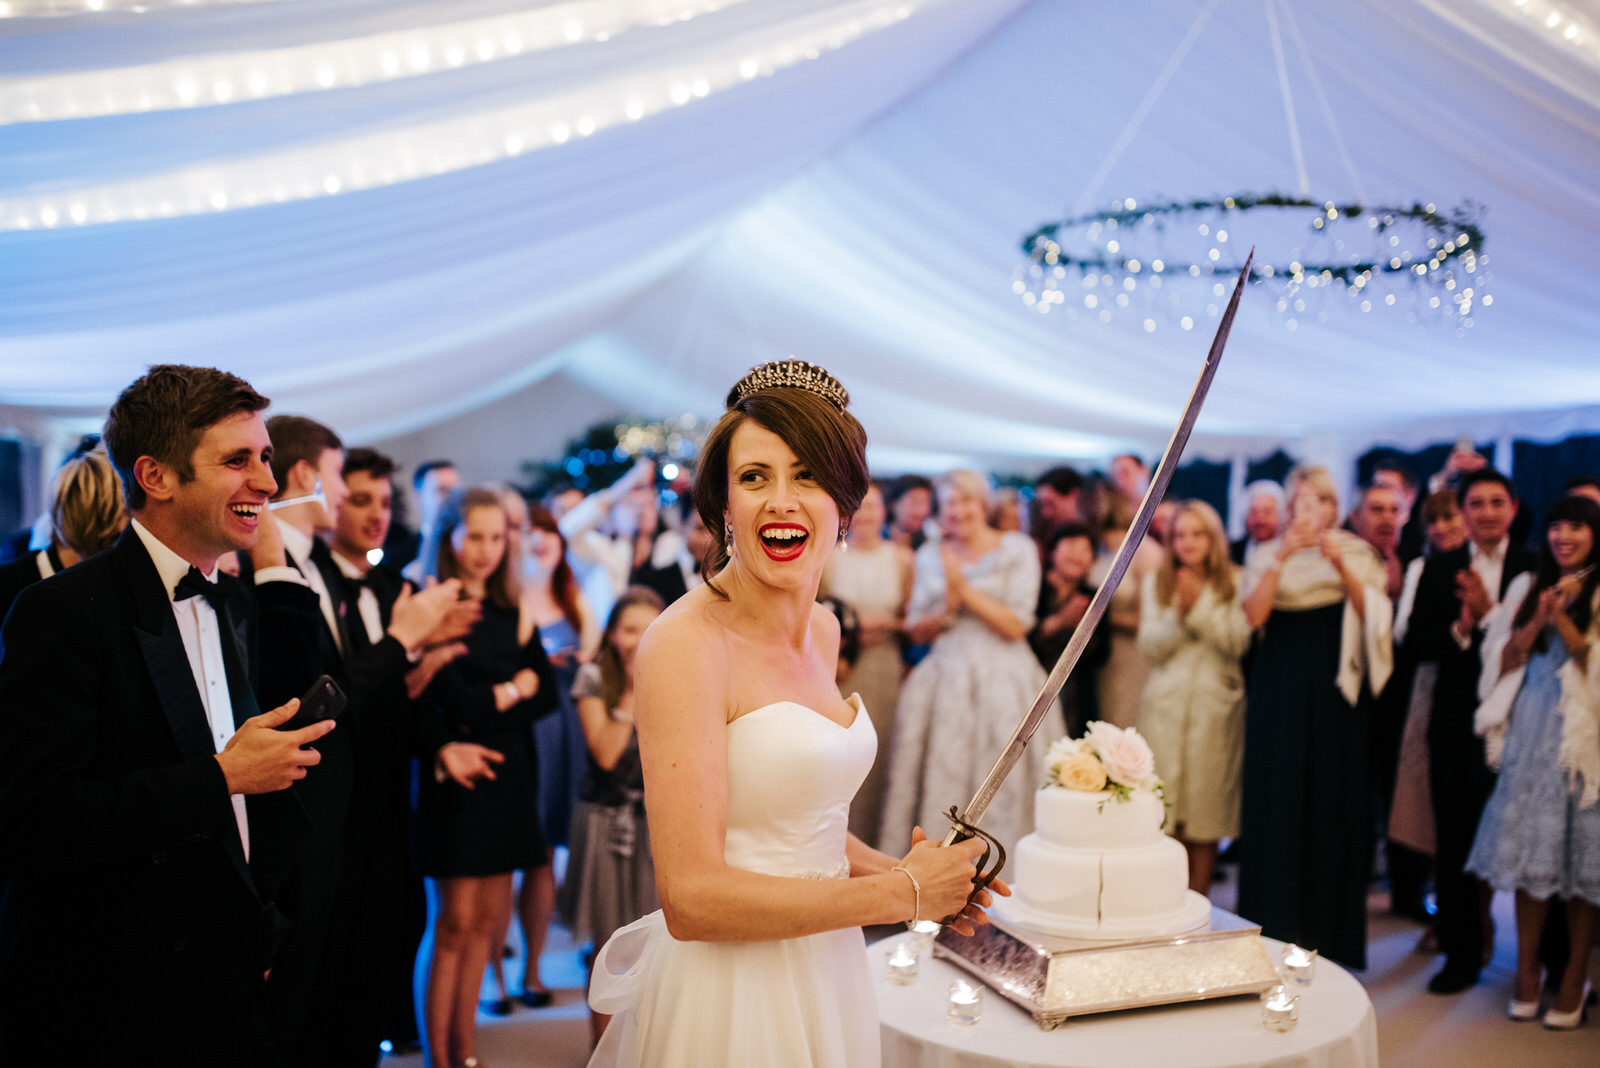 Bride holds military sword after cutting wedding cake as guests